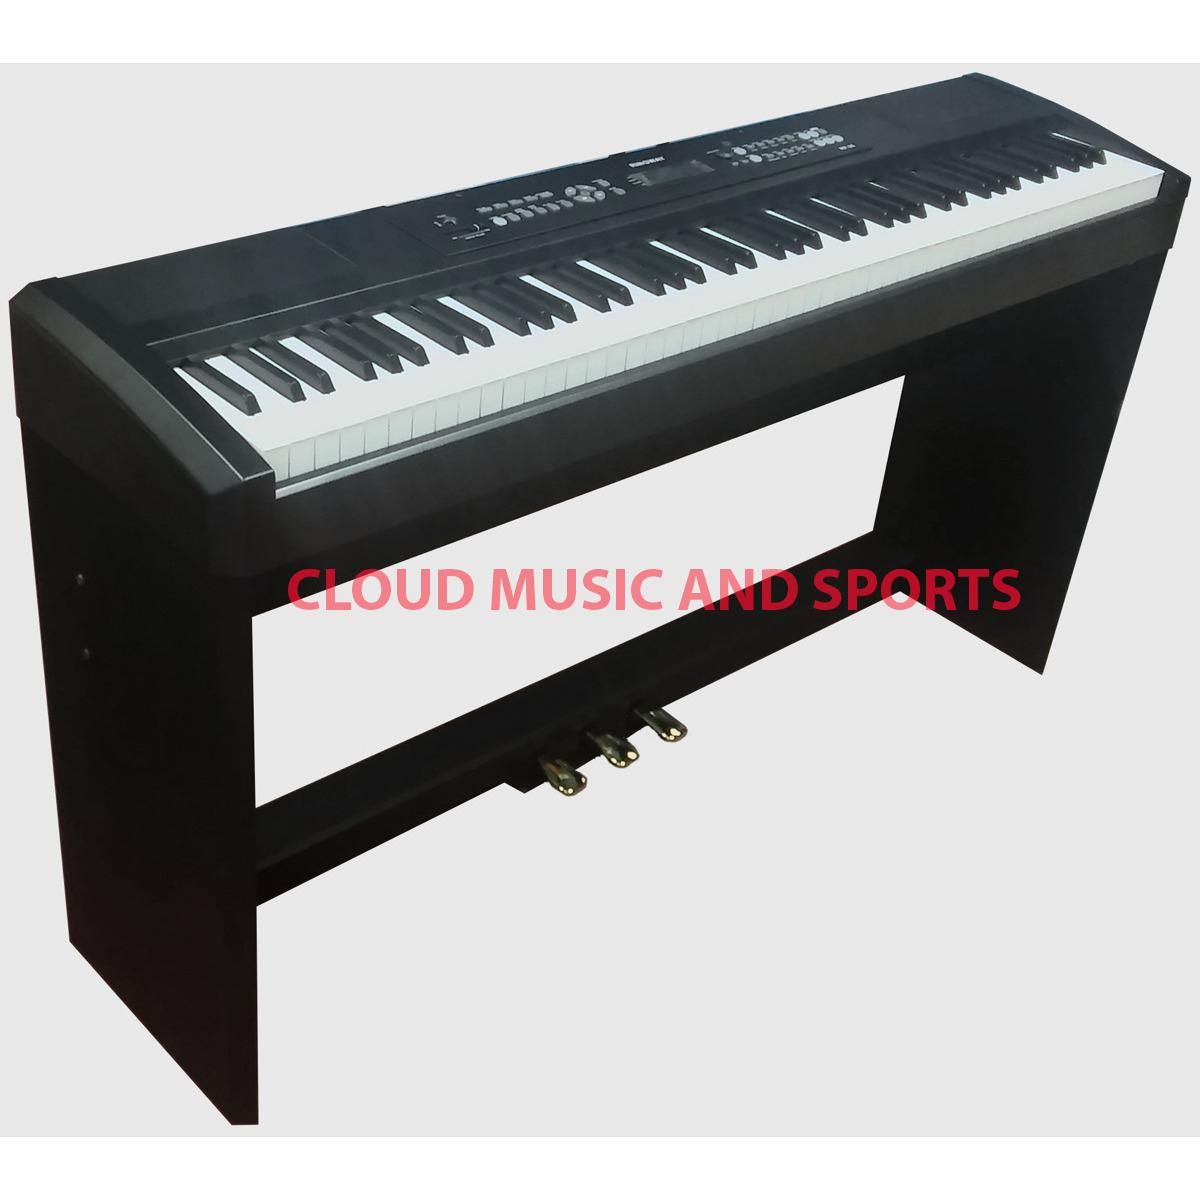 Ringway RP-35 Digital Piano, 88 hammer keys with Stand